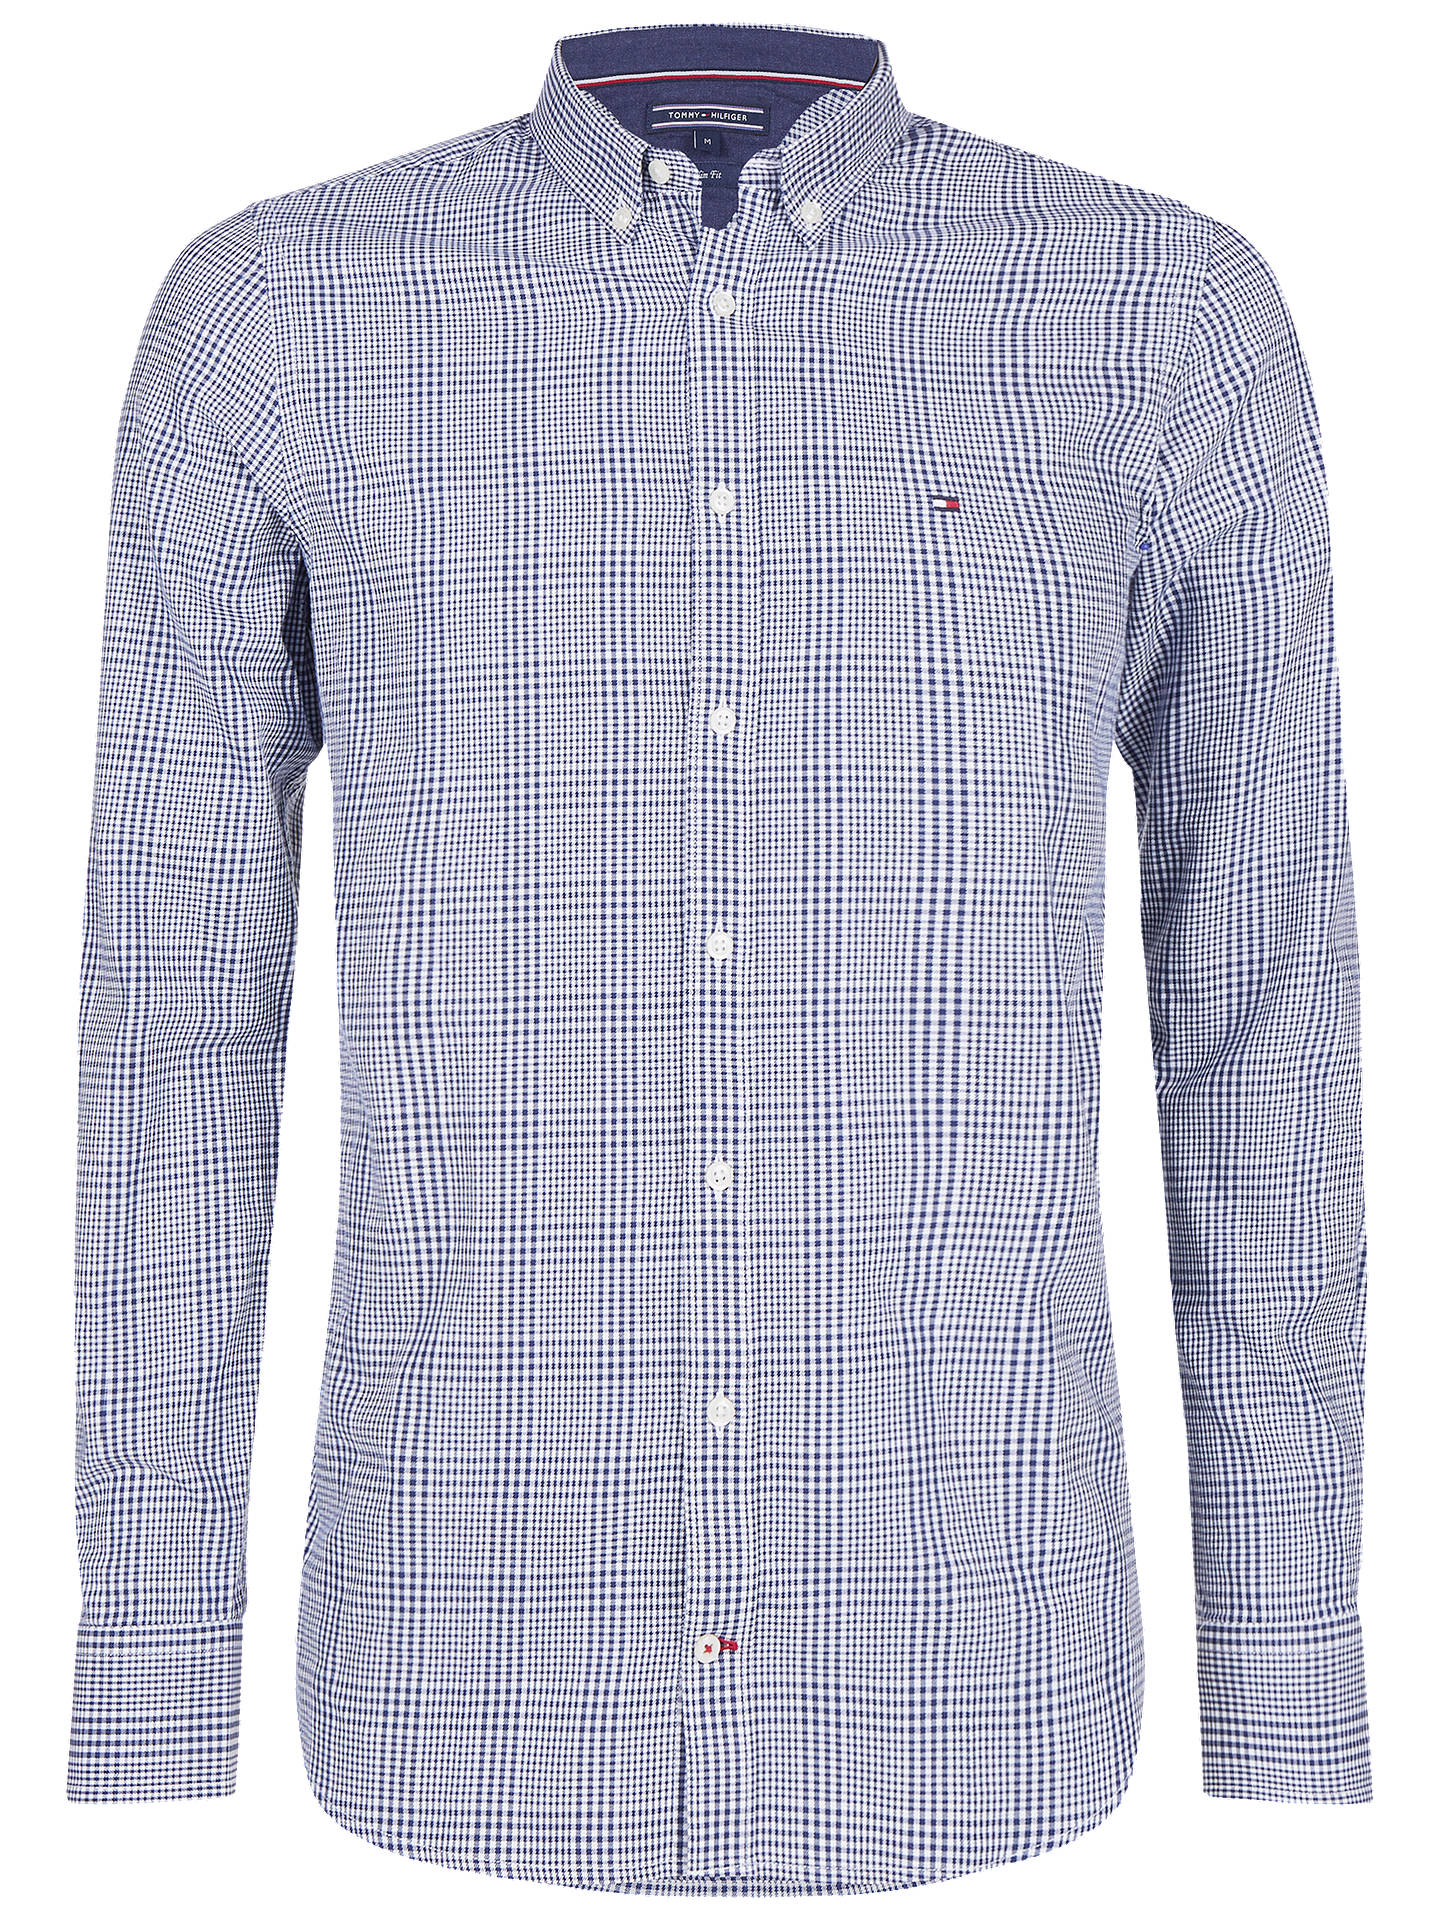 14f01ace8 Buy Tommy Hilfiger Prince of Wales Check Print Shirt, Blue Depths/Bright  White, ...